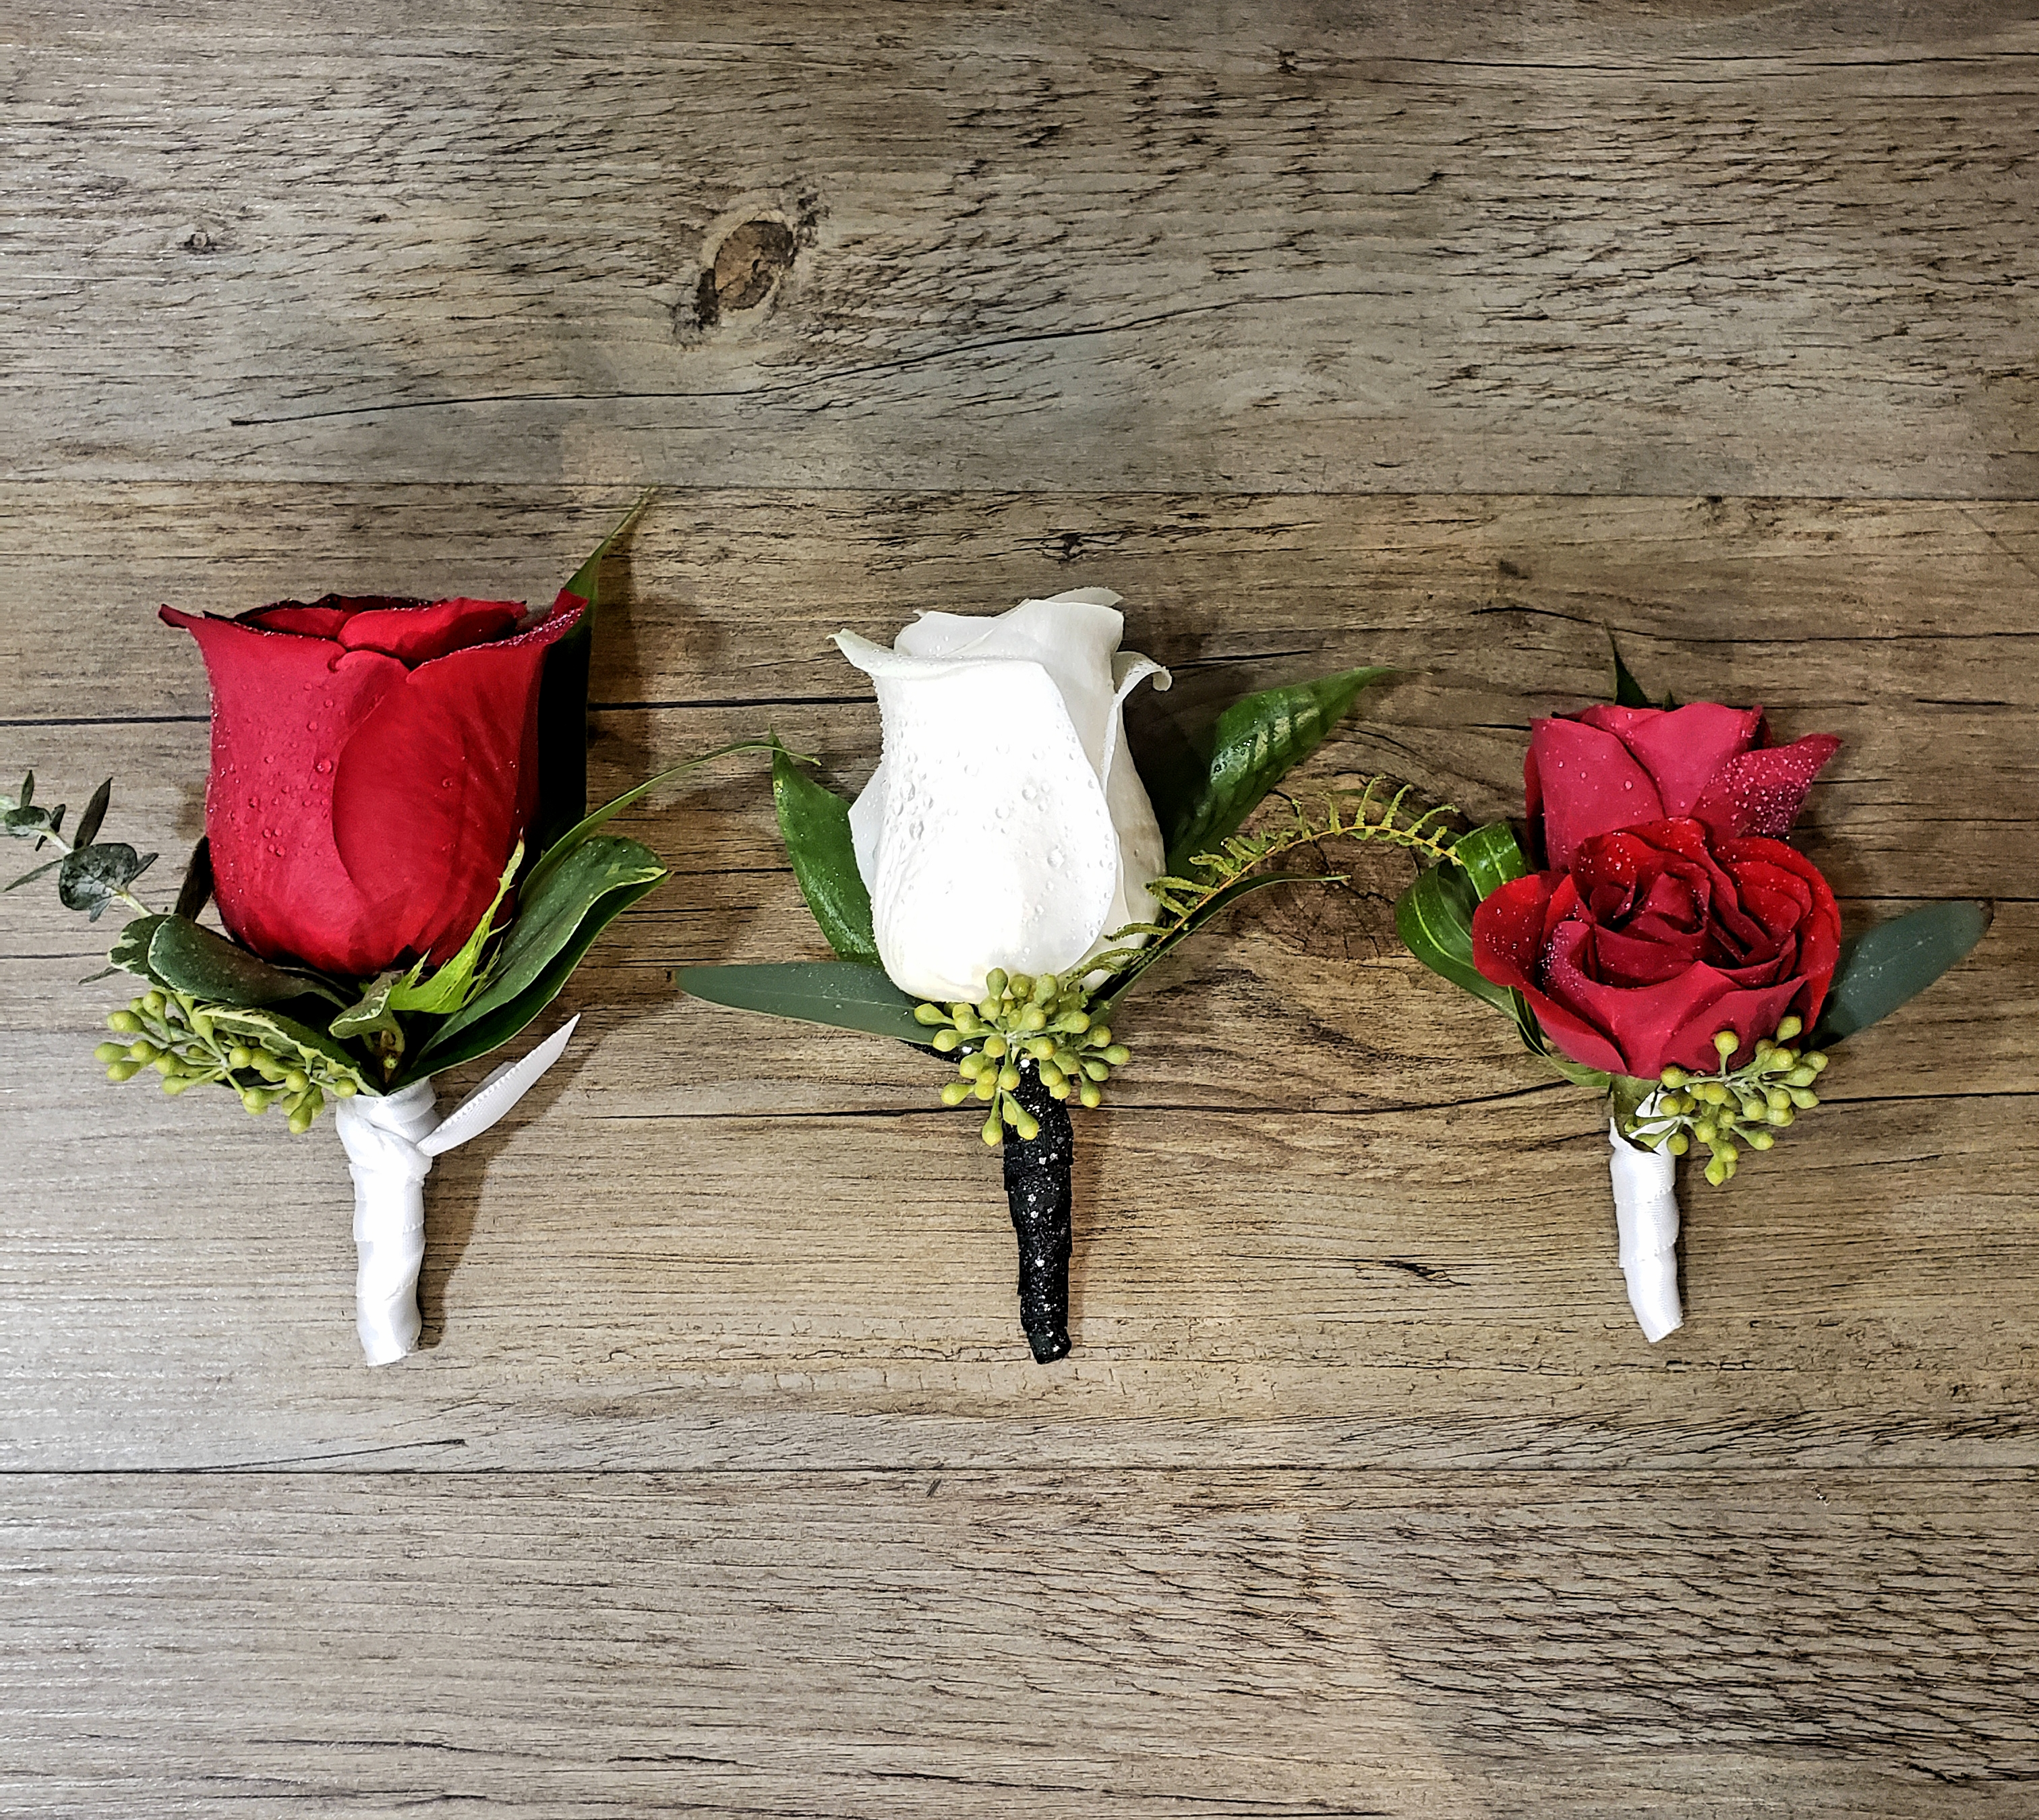 rose boutonnieres.jpg